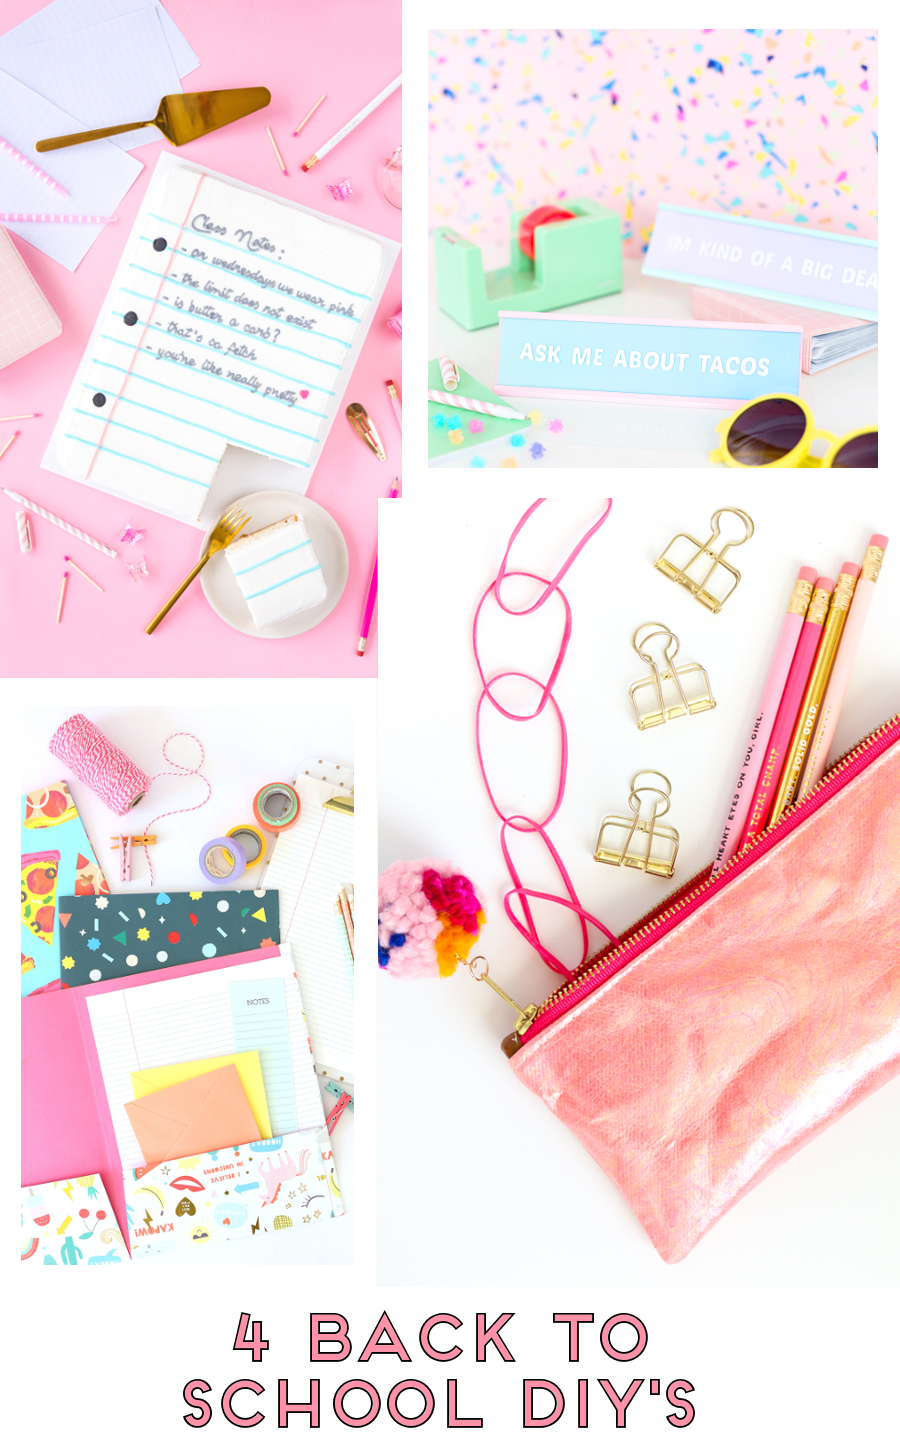 4 BACK TO SCHOOL DIY'S #BACKTOSCHOOL #ROUNDUP #SCHOOL #DIY